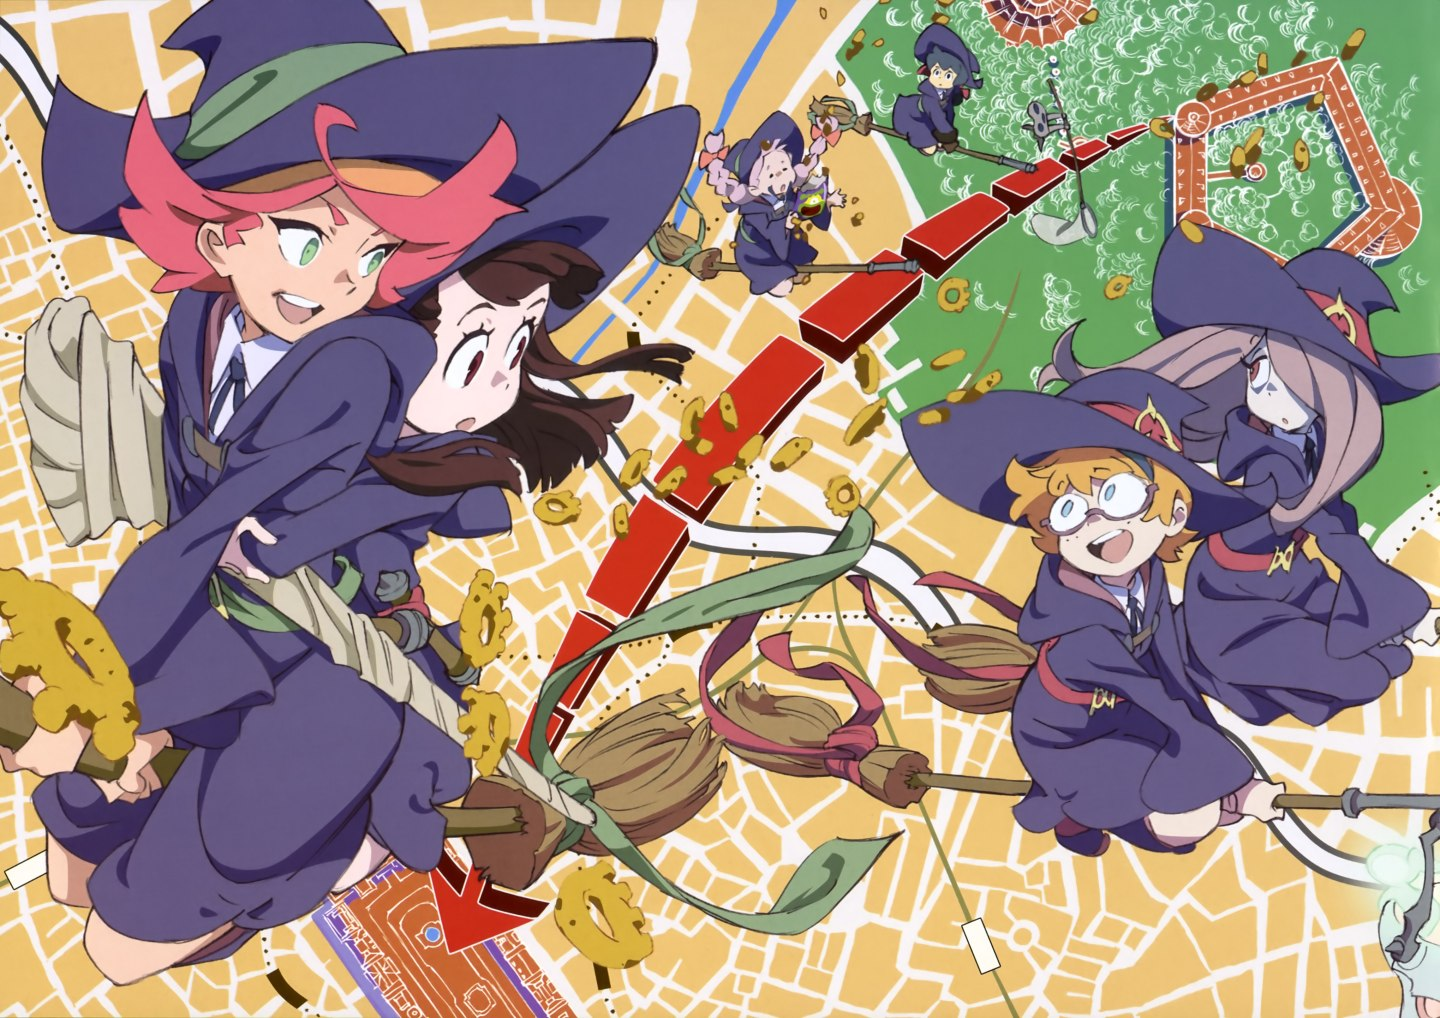 little-witch-academia-interview-yoh-yoshinari